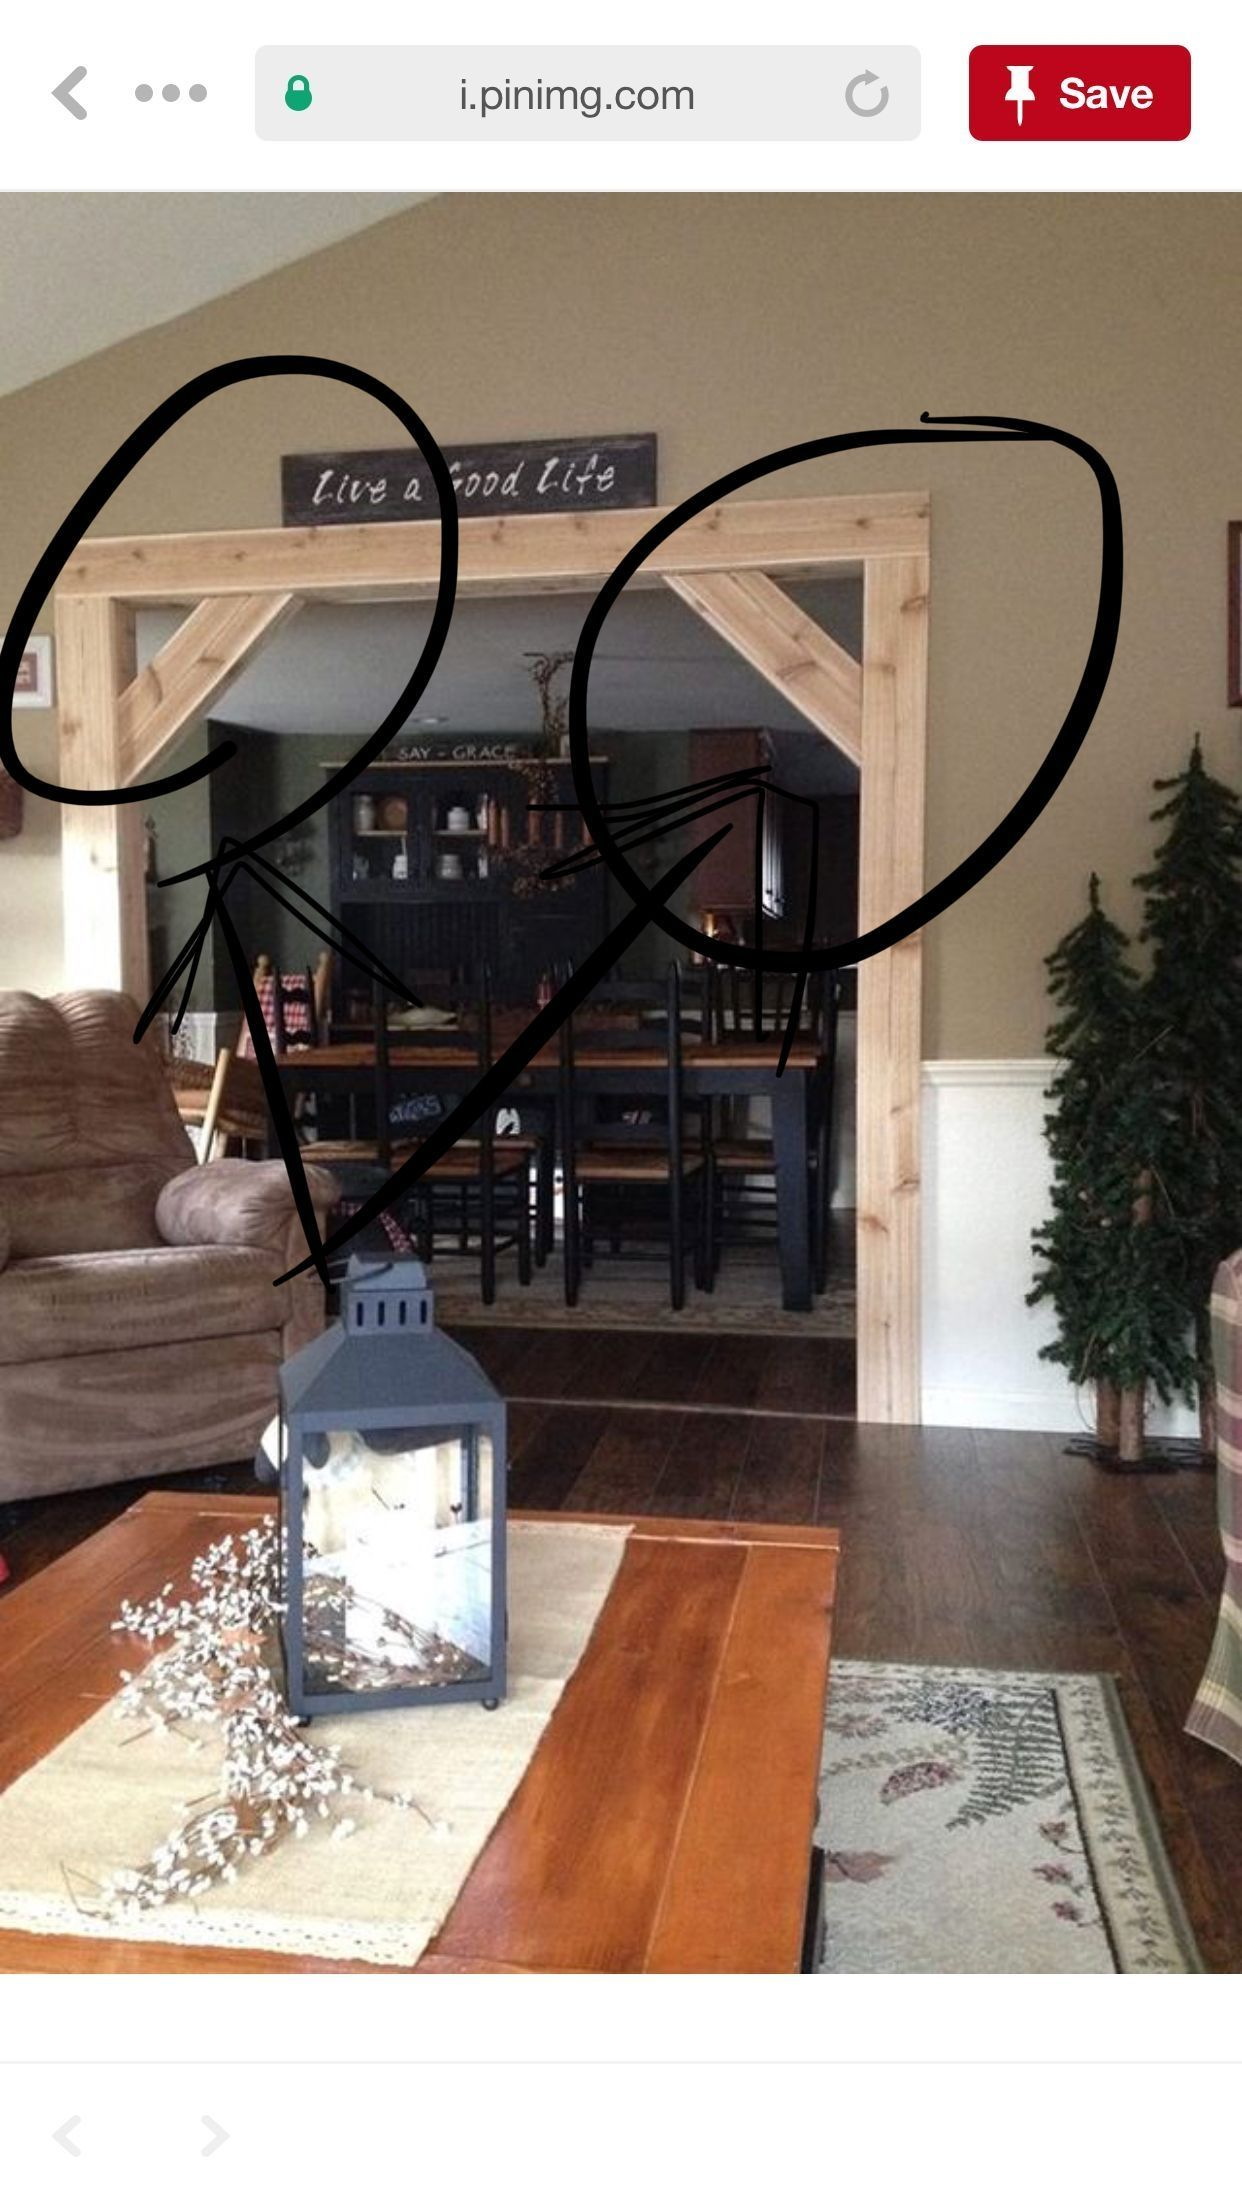 Gorgeous inexpensive lake house living room decorating ideas also rh pinterest